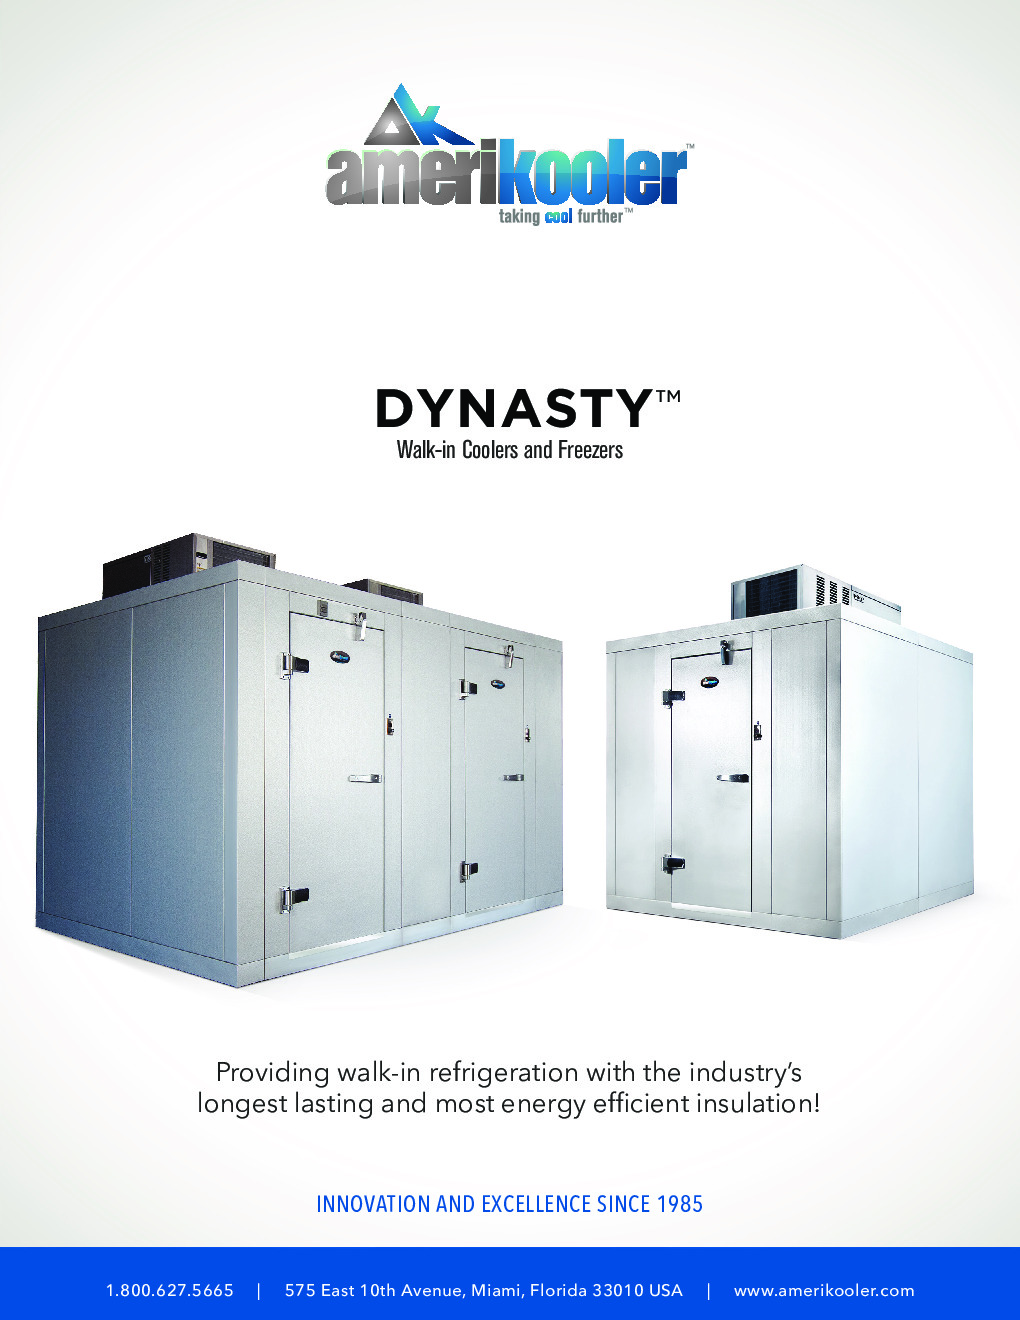 AmeriKooler DW081377F-5/8-RM 8' X 13' Walk-In Cooler, 8' L Cooler with Floor and 5' L Freezer, Remote